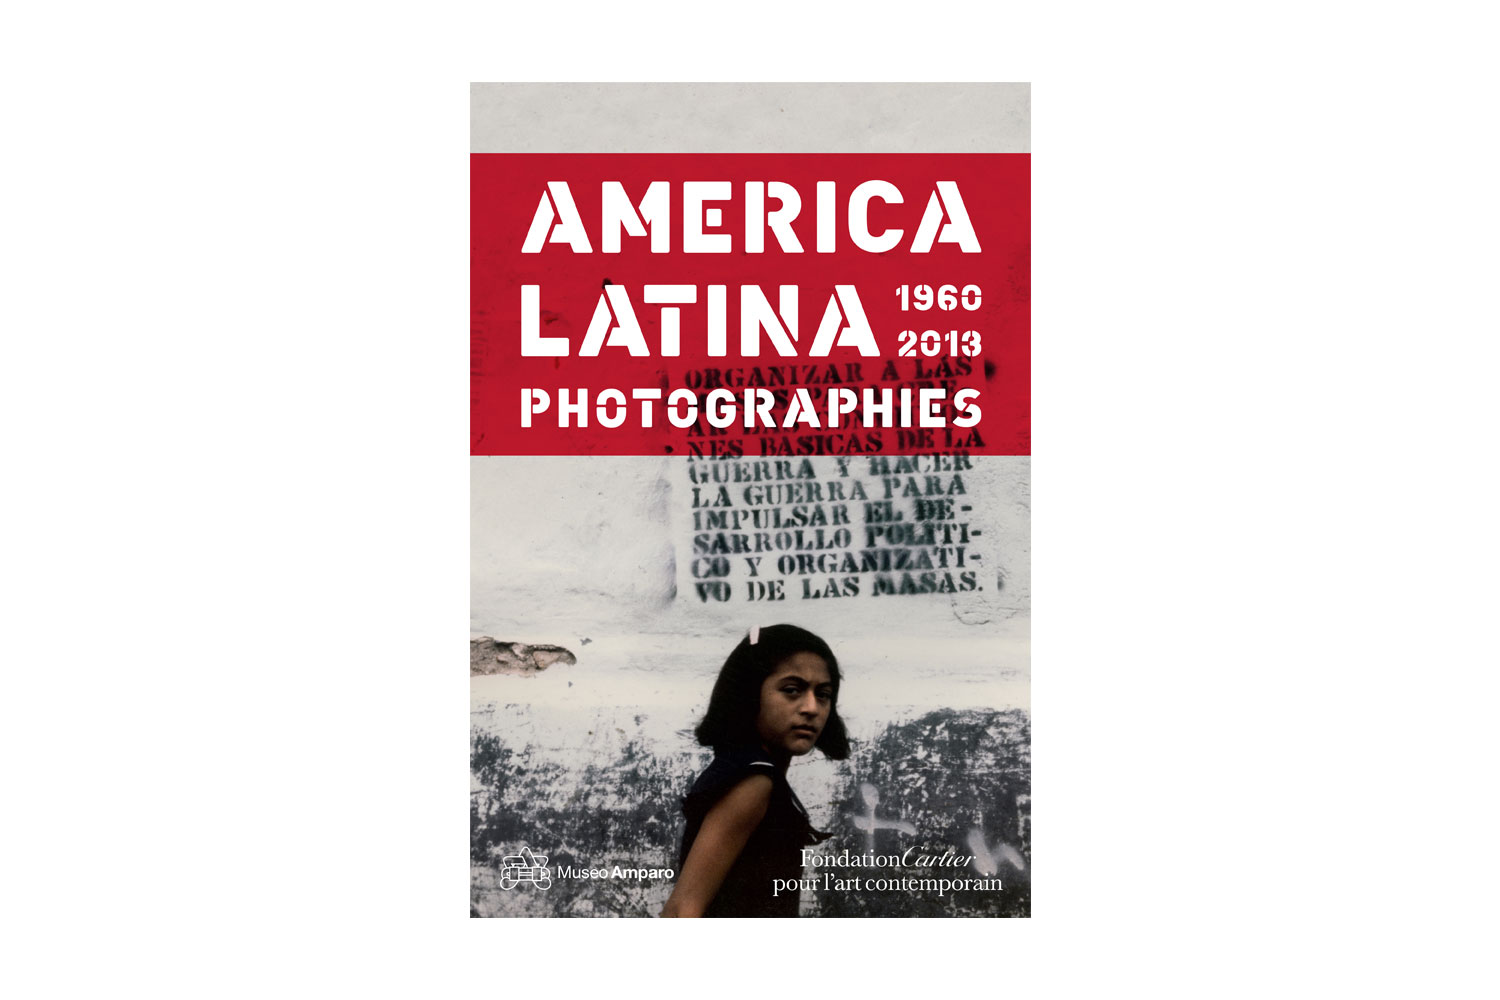 America Latina 1960-2013, published by Thames & Hudson This survey of Latin American photographers presents incredibly diverse perspectives of 70 artists who use the common ground of photography to expose and dissect a  tumultuous half-century of modern history.